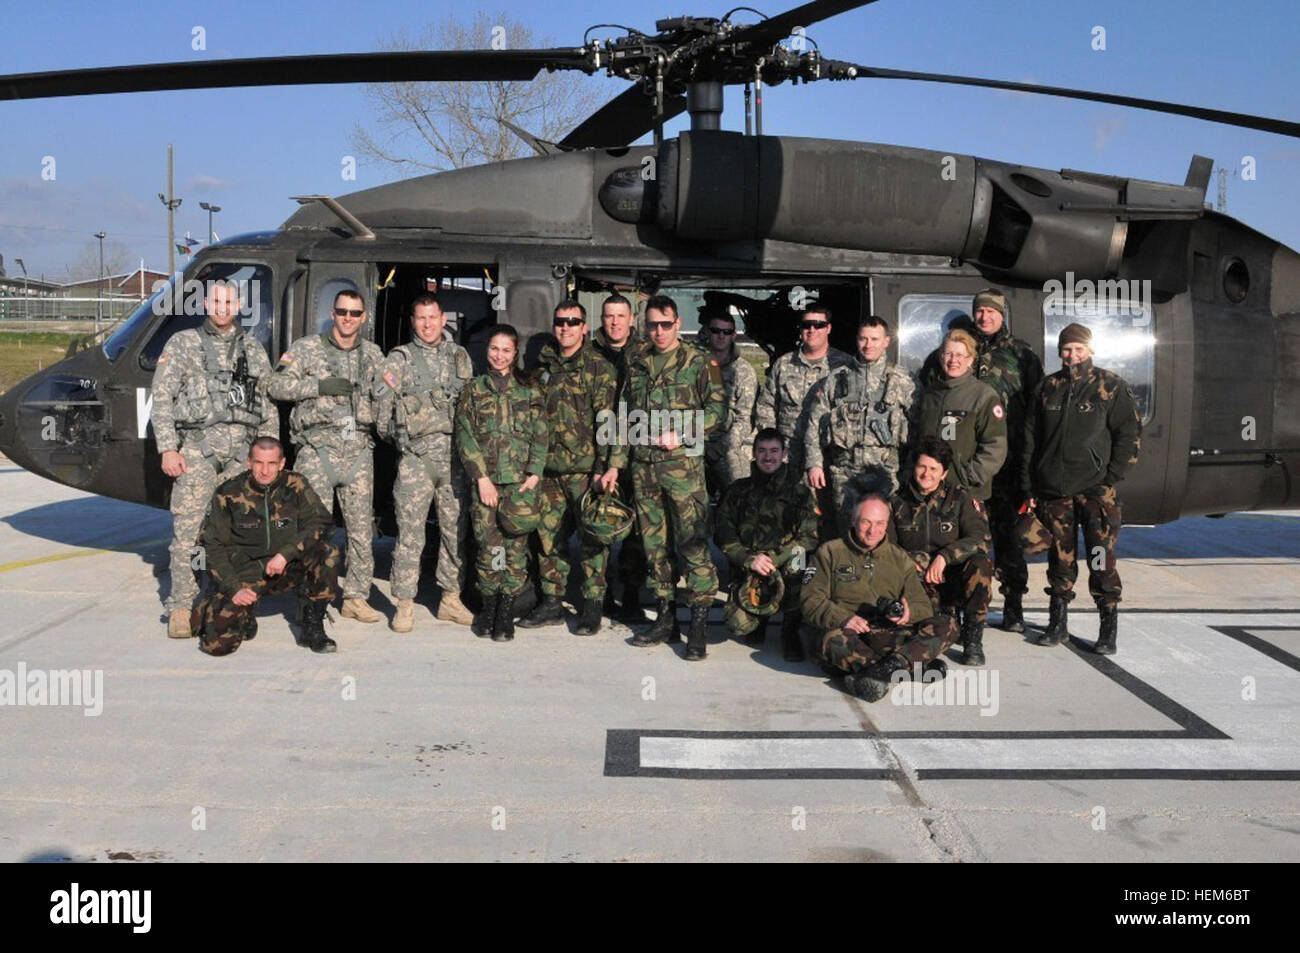 U.S. Army soldiers with the Louisiana National Guard's 2nd Battalion, 244th Aviation Regiment, pose with Hungarian Stock Photo